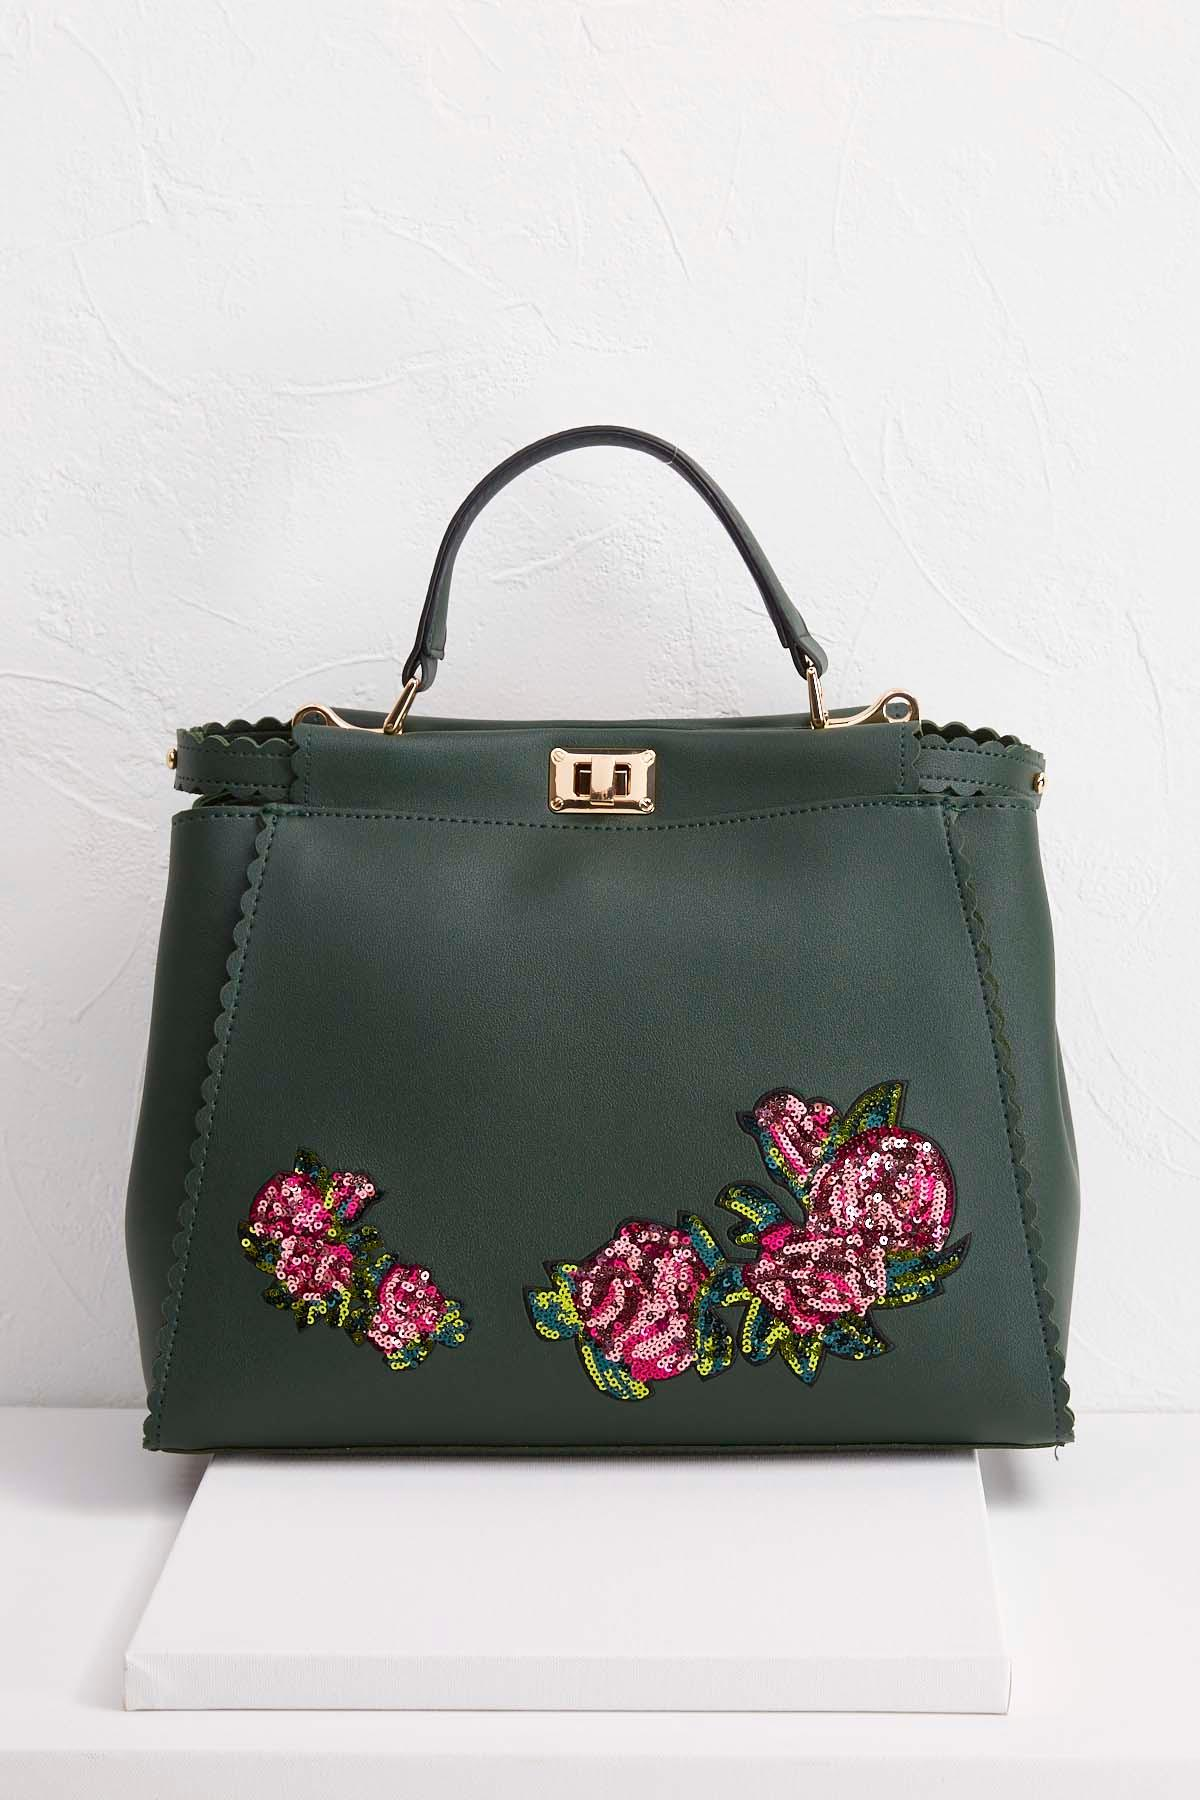 scalloped sequin floral tote s